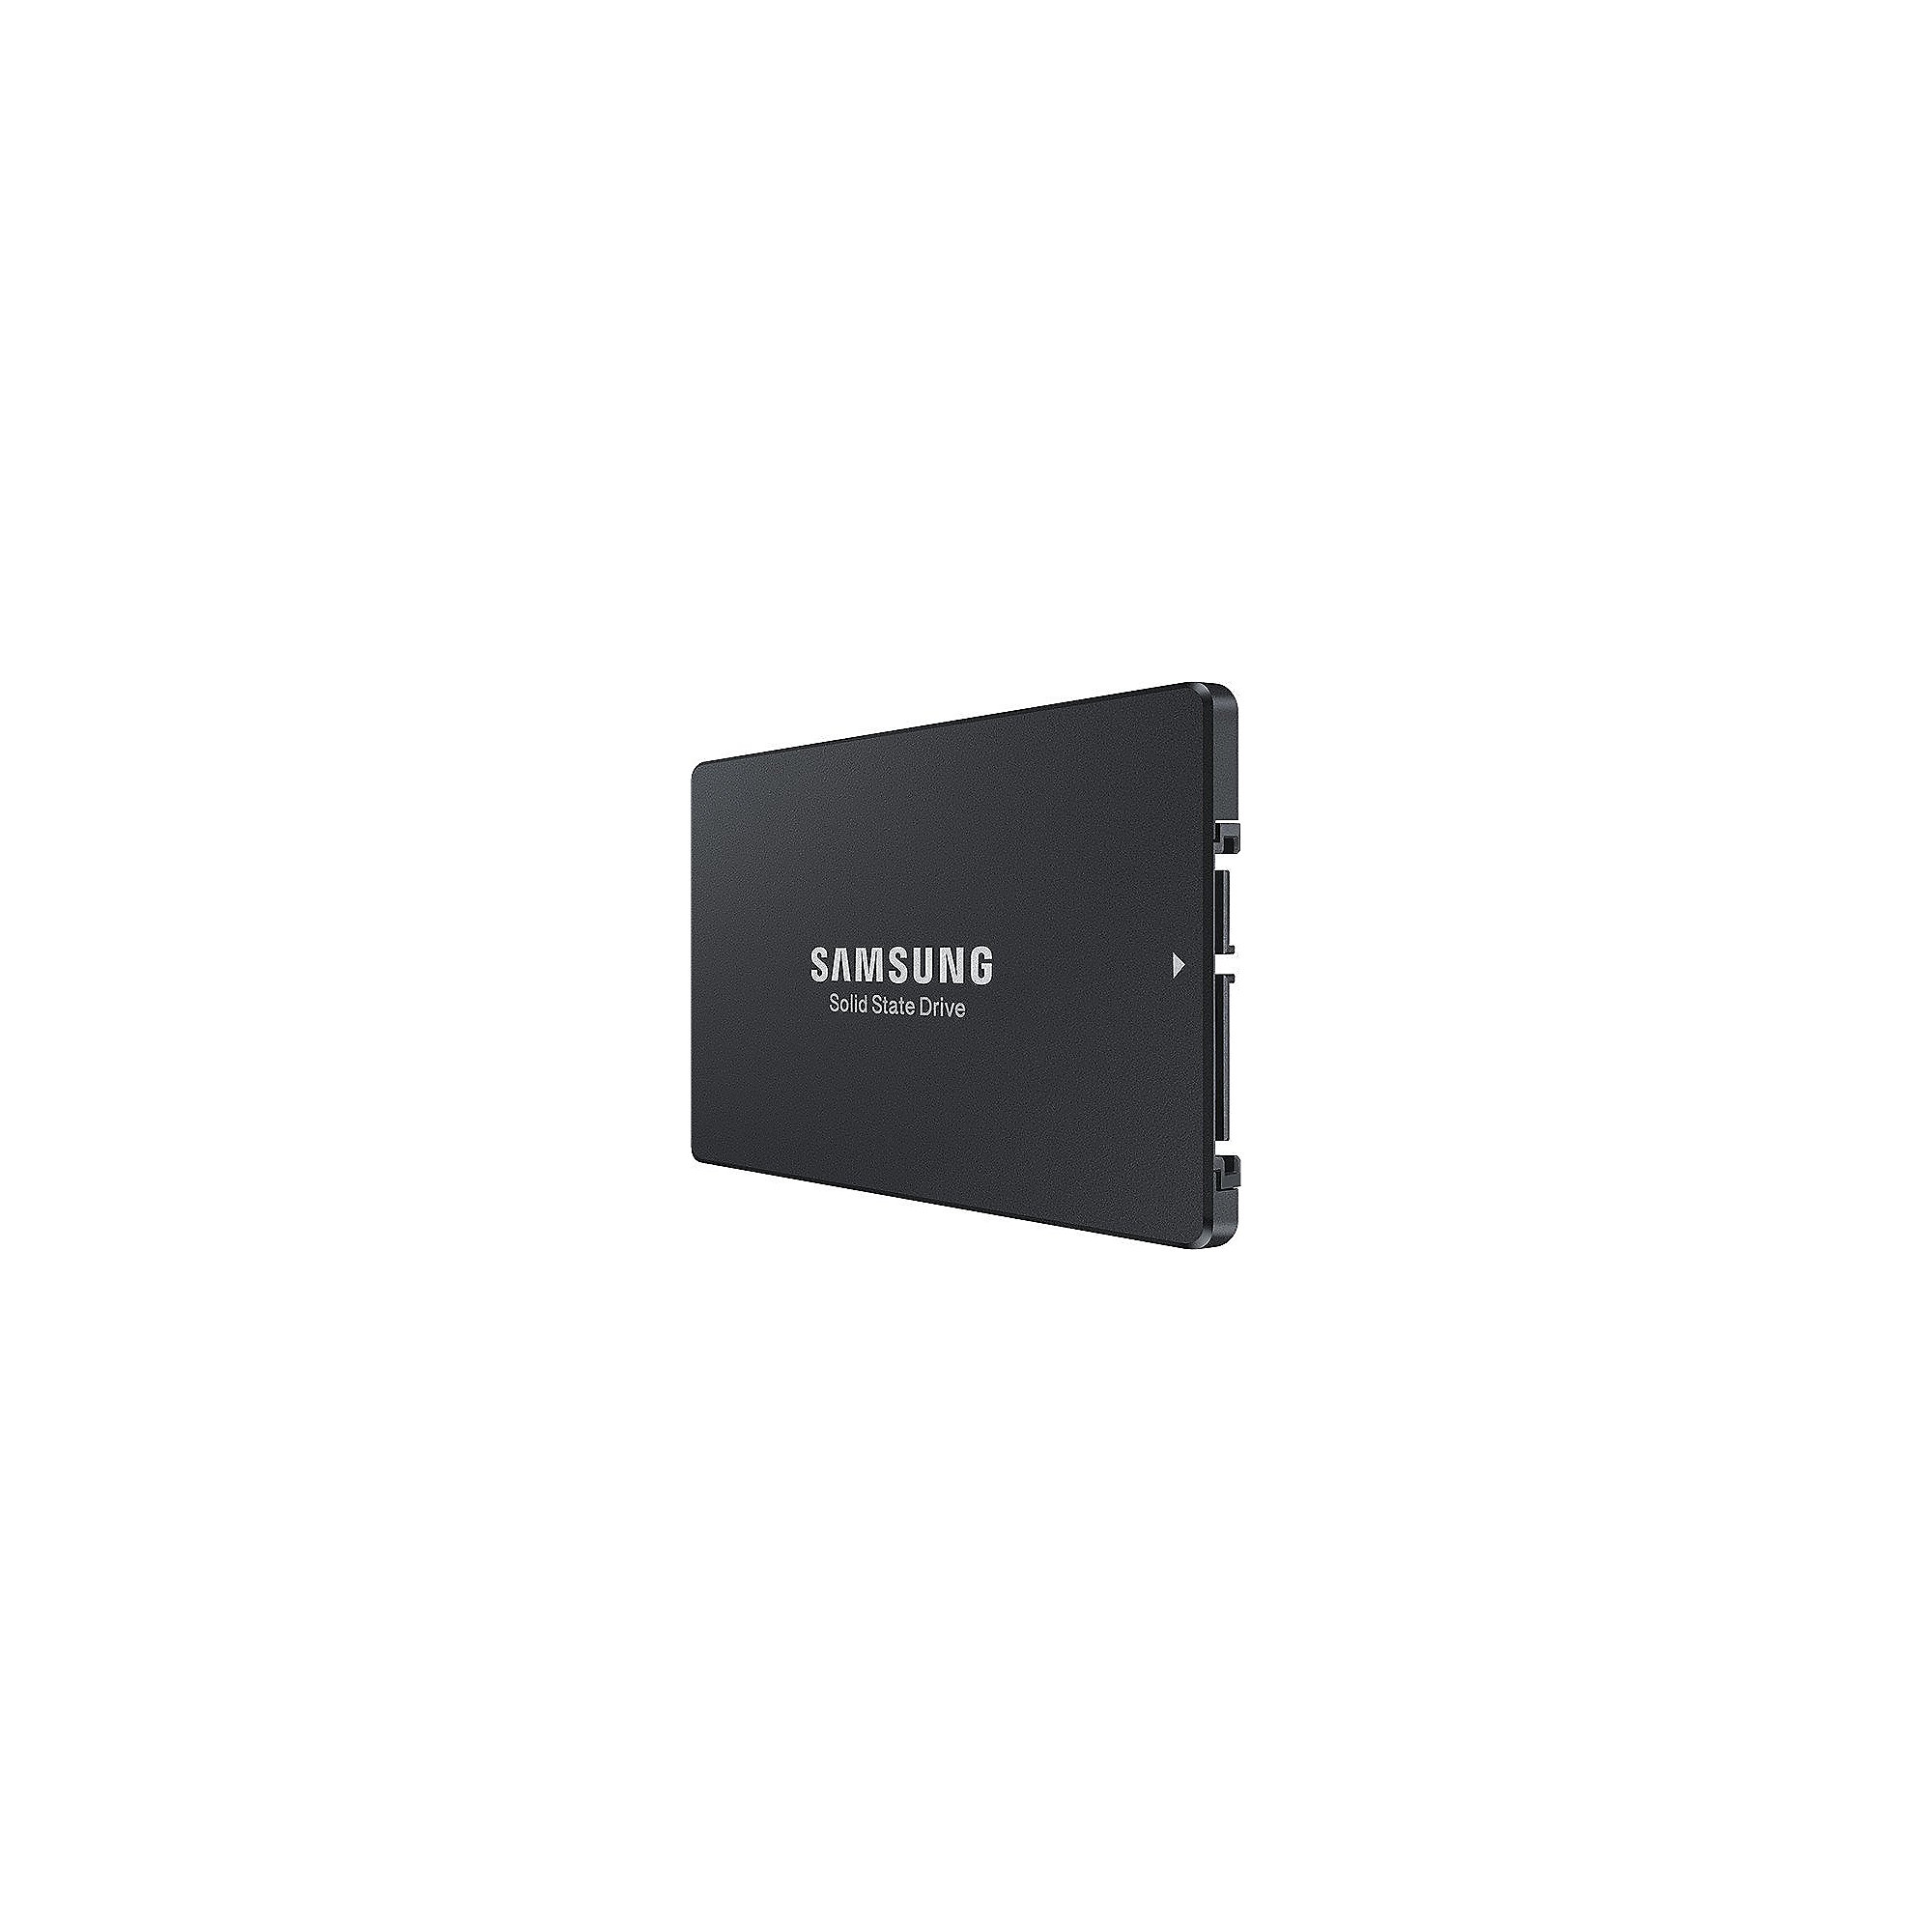 Samsung SSD PM863 Series 3,84TB MLC SATA600 - Enterprise